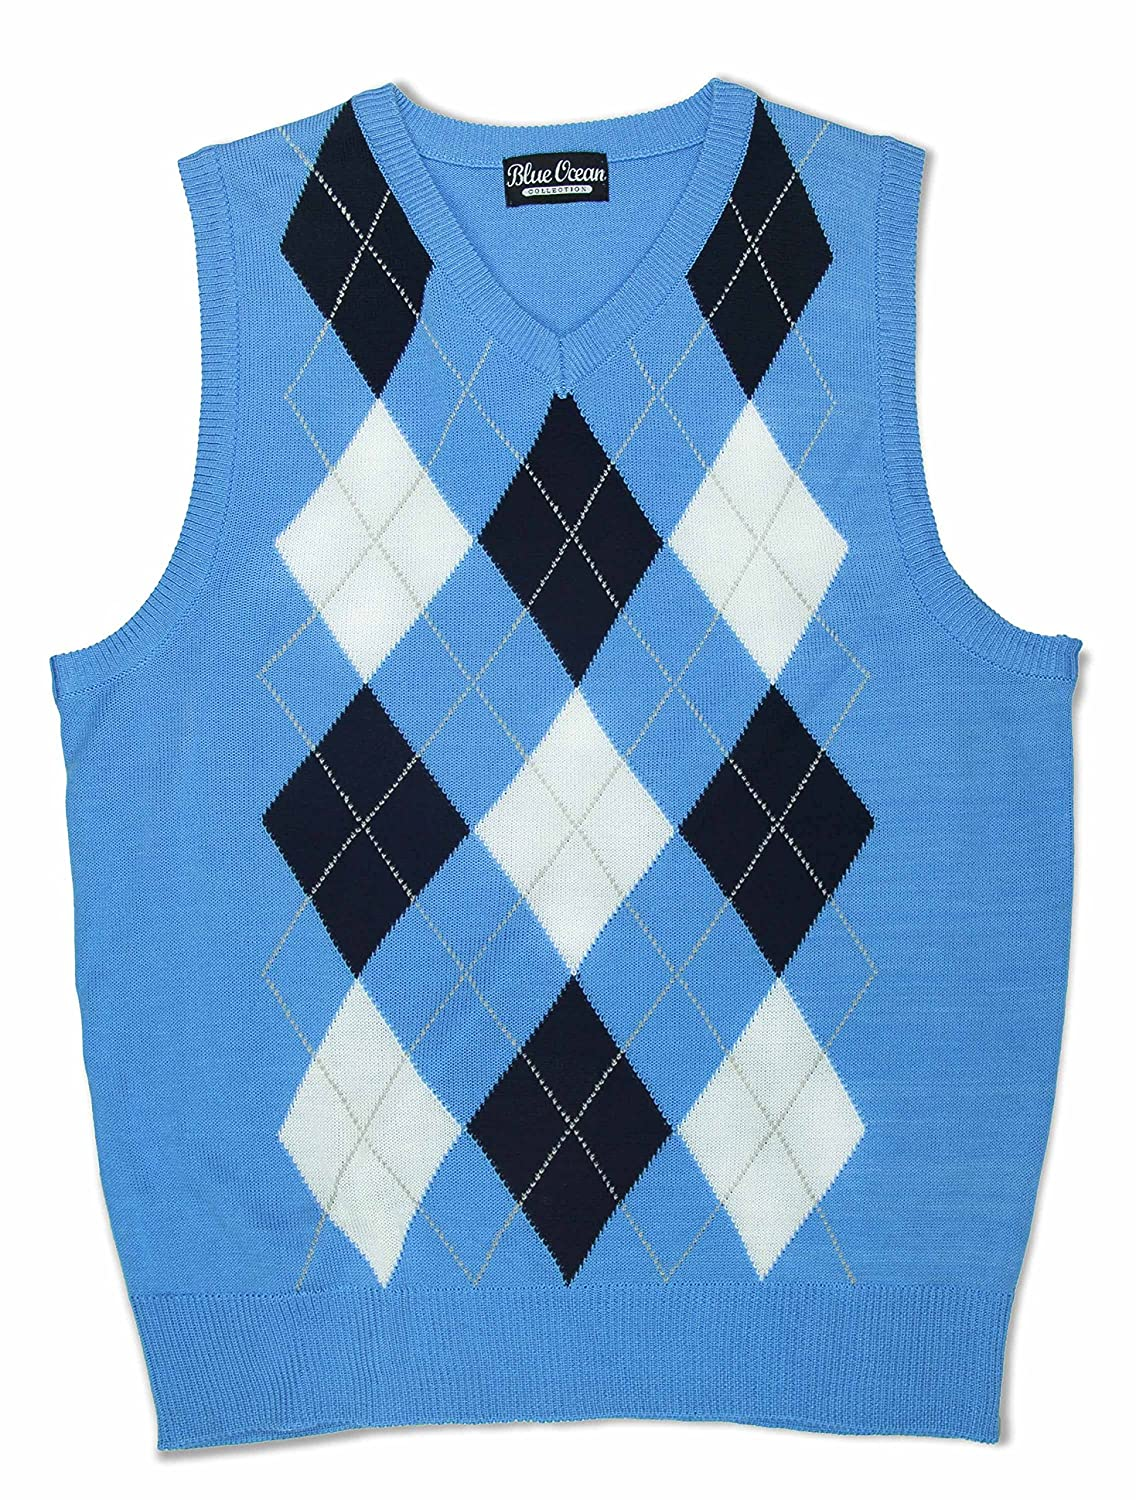 Amazon.com: Blue Ocean Kids Argyle Sweater Vest: Clothing